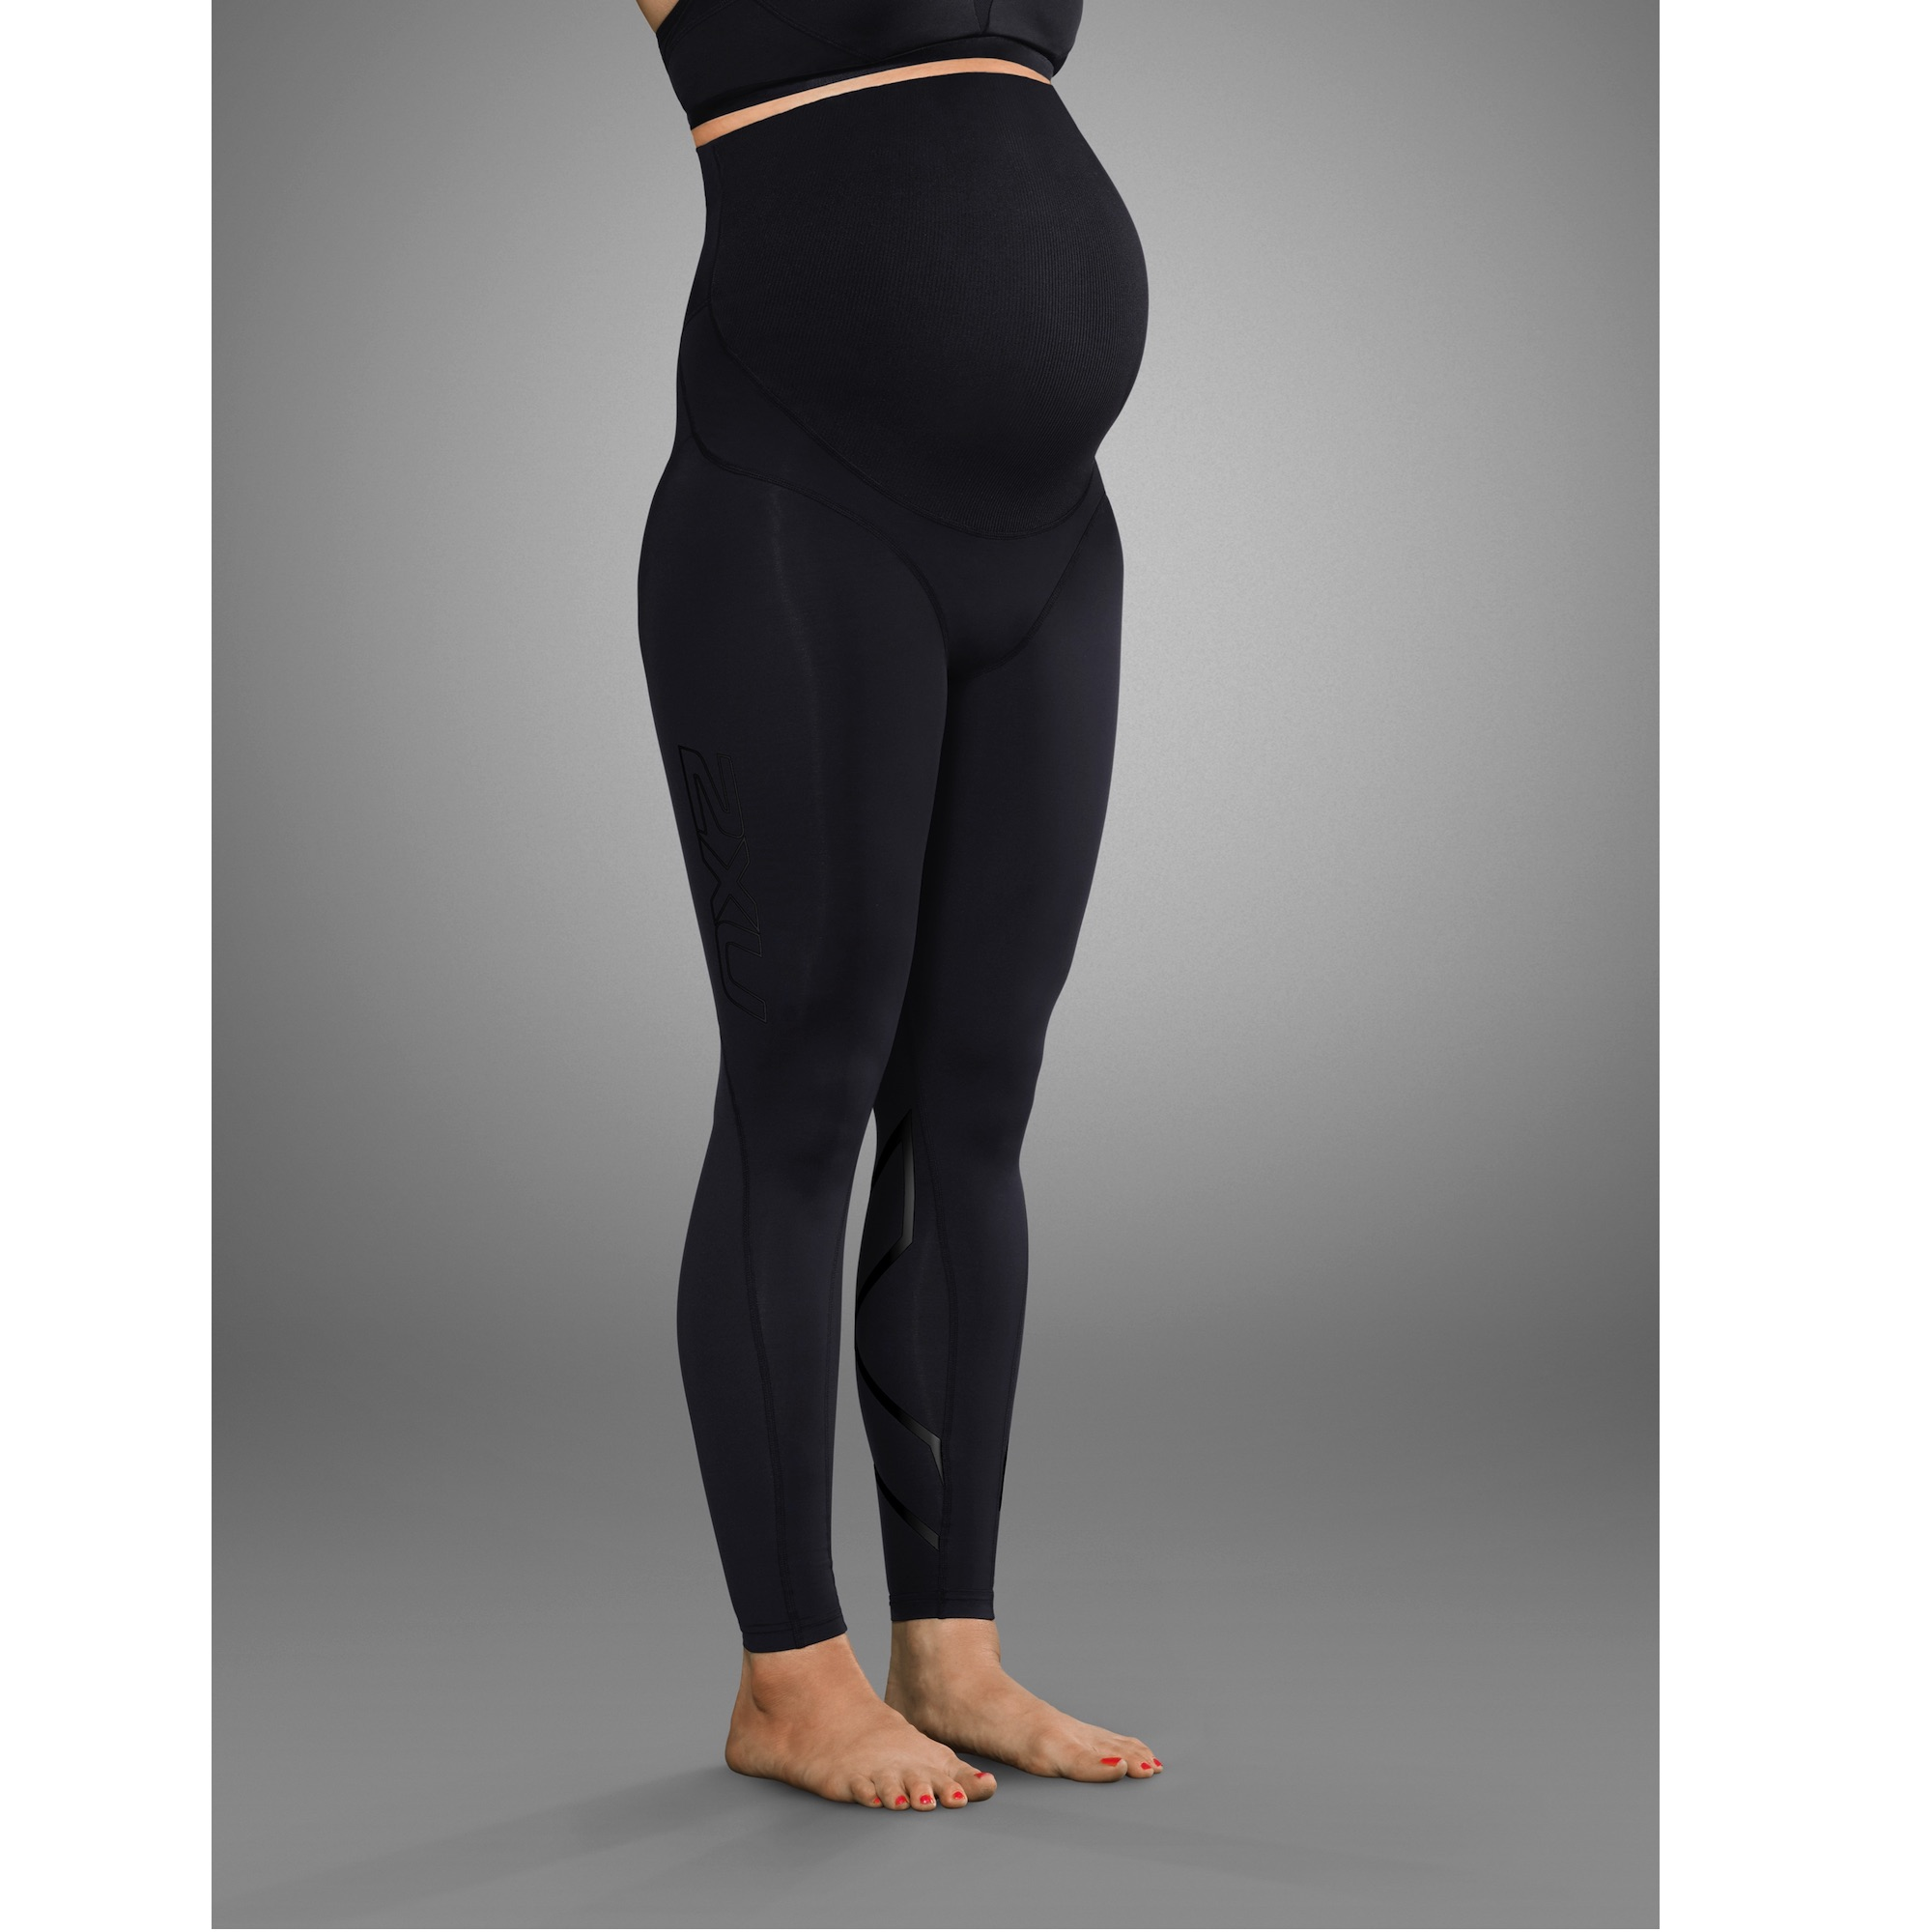 2XU Prenatal Active Maternity Tights Black